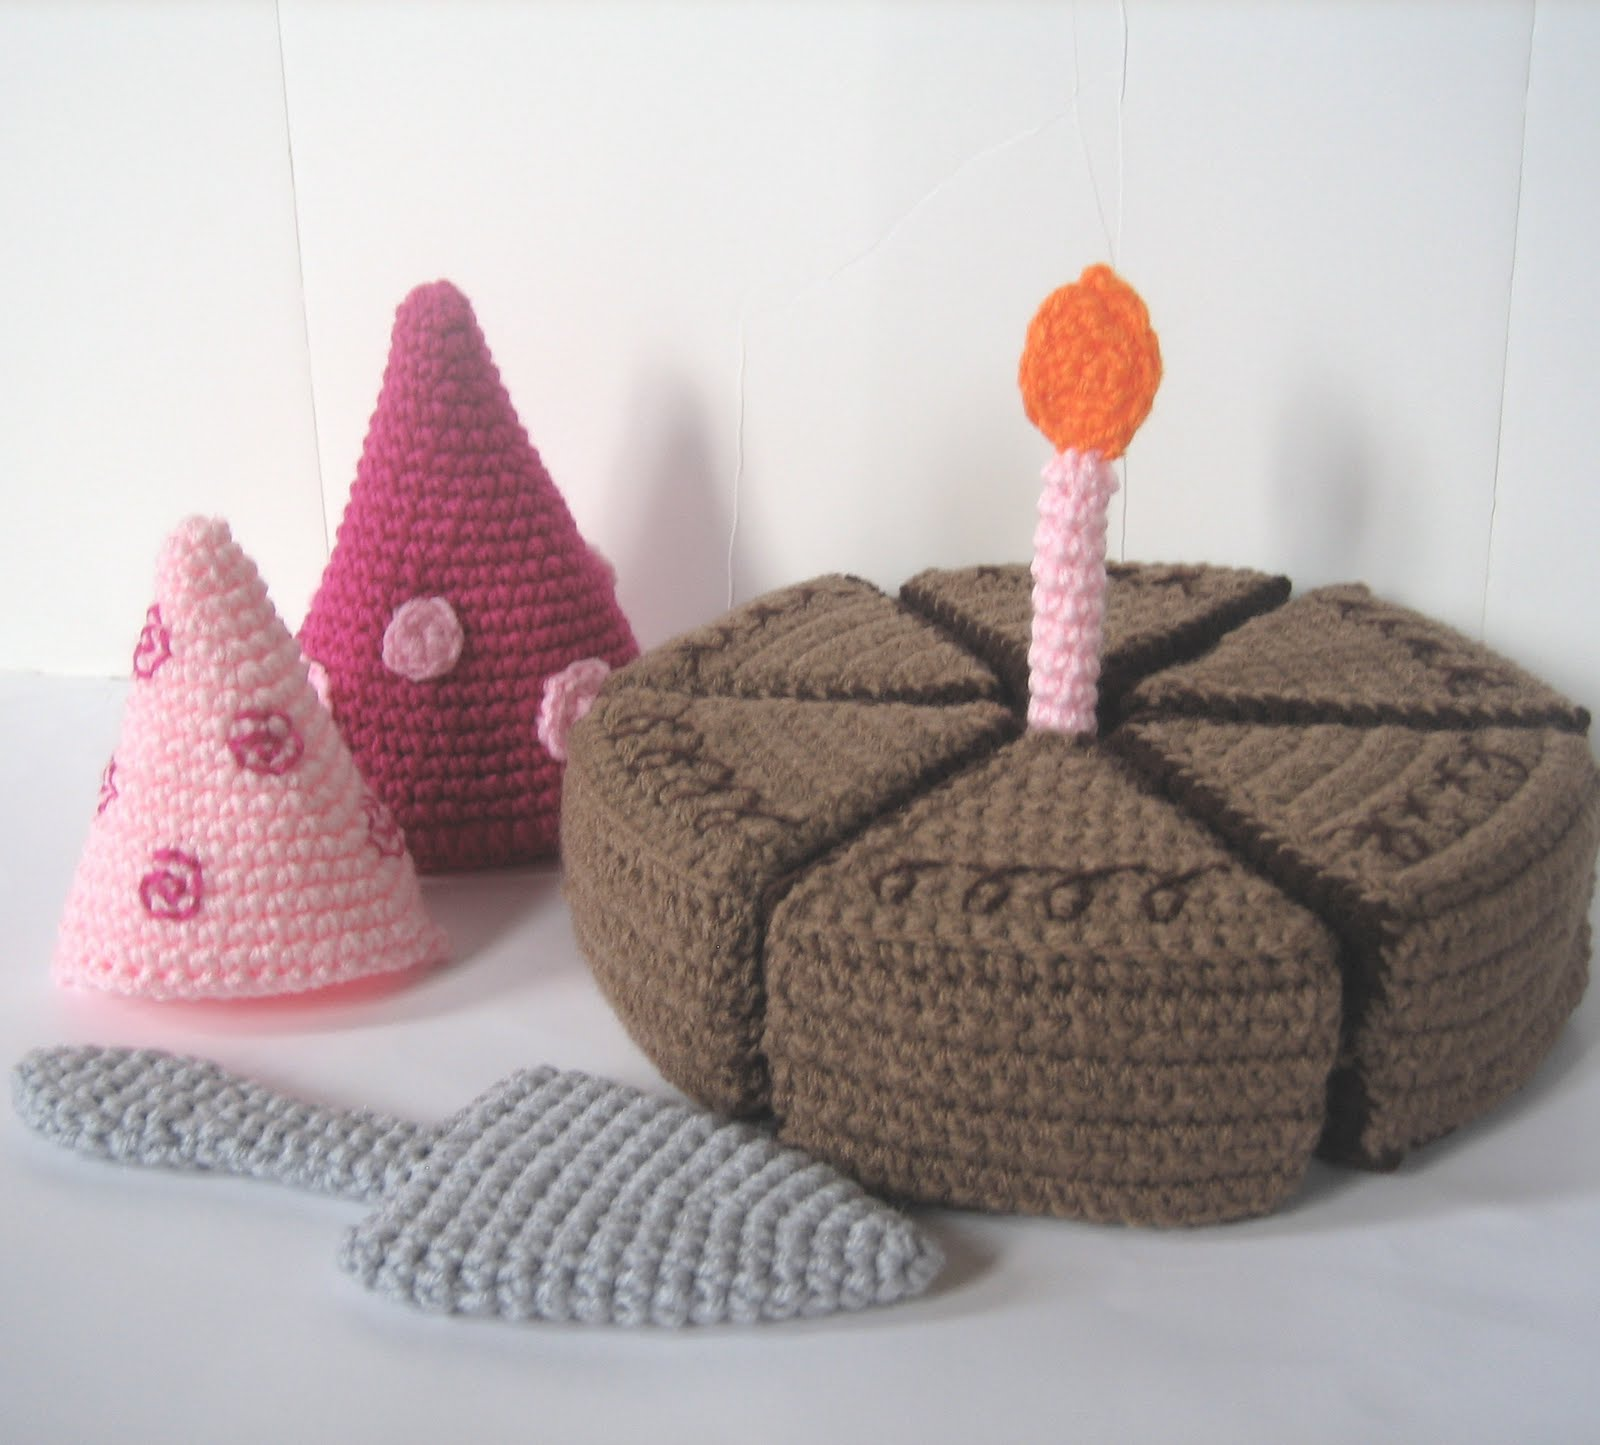 Modern Crochet Patterns : Modern Crochet Patterns - My Patterns